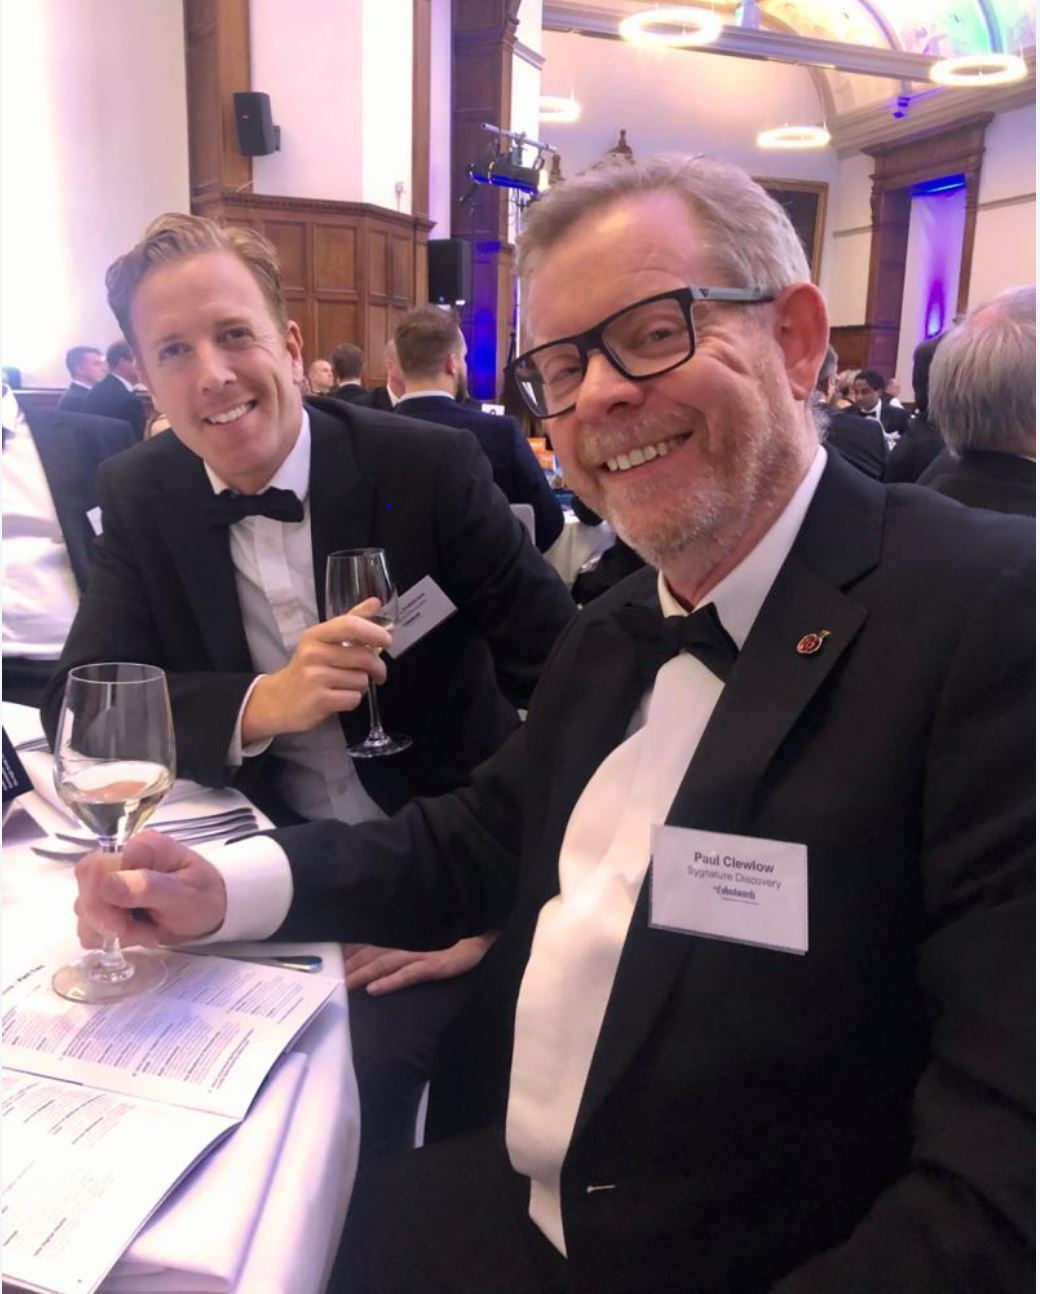 Paul Clewlow and Director of Marketing Andy Lindstrom enjoy a tipple at the OBN Awards 2019